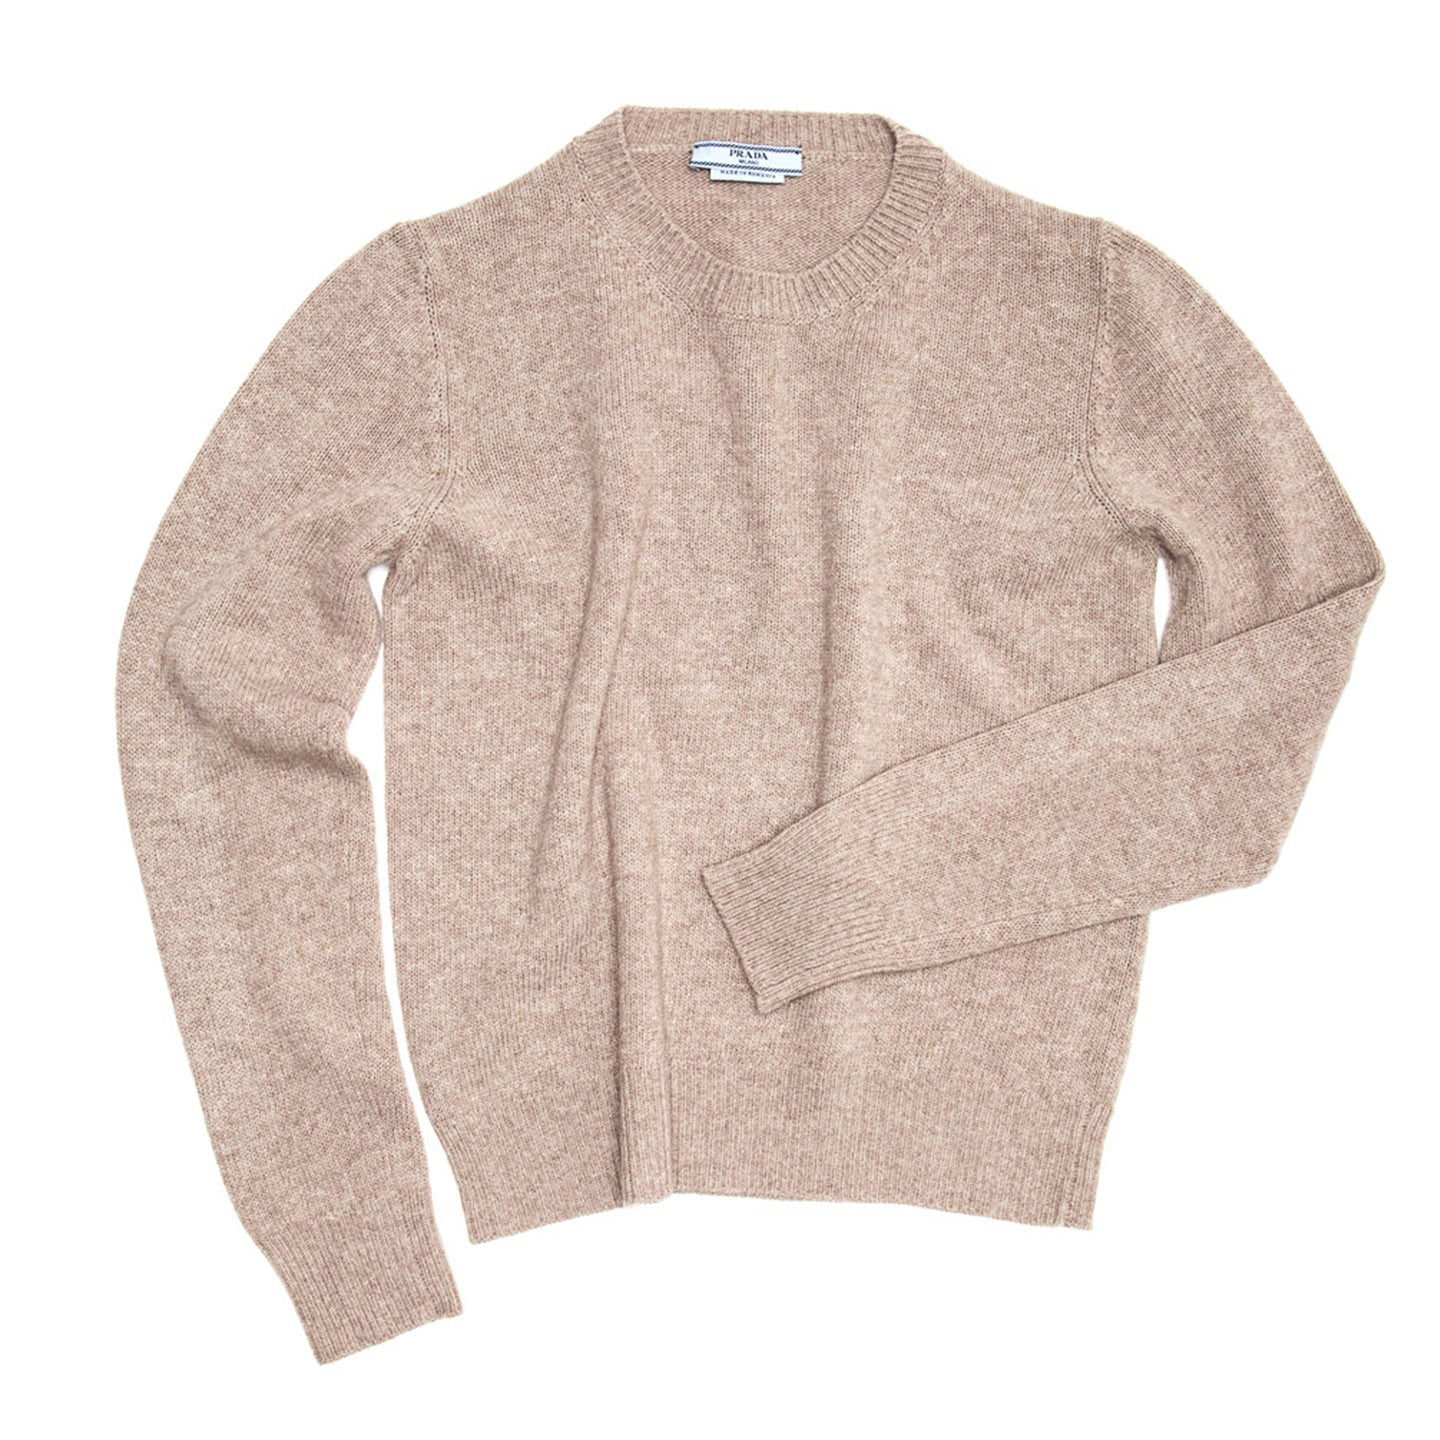 Find an authentic preowned Prada Light Brown Cashmere Sweater size 48 (Italian) at BunnyJack, where up to 50% of each sale price is donated to charity.